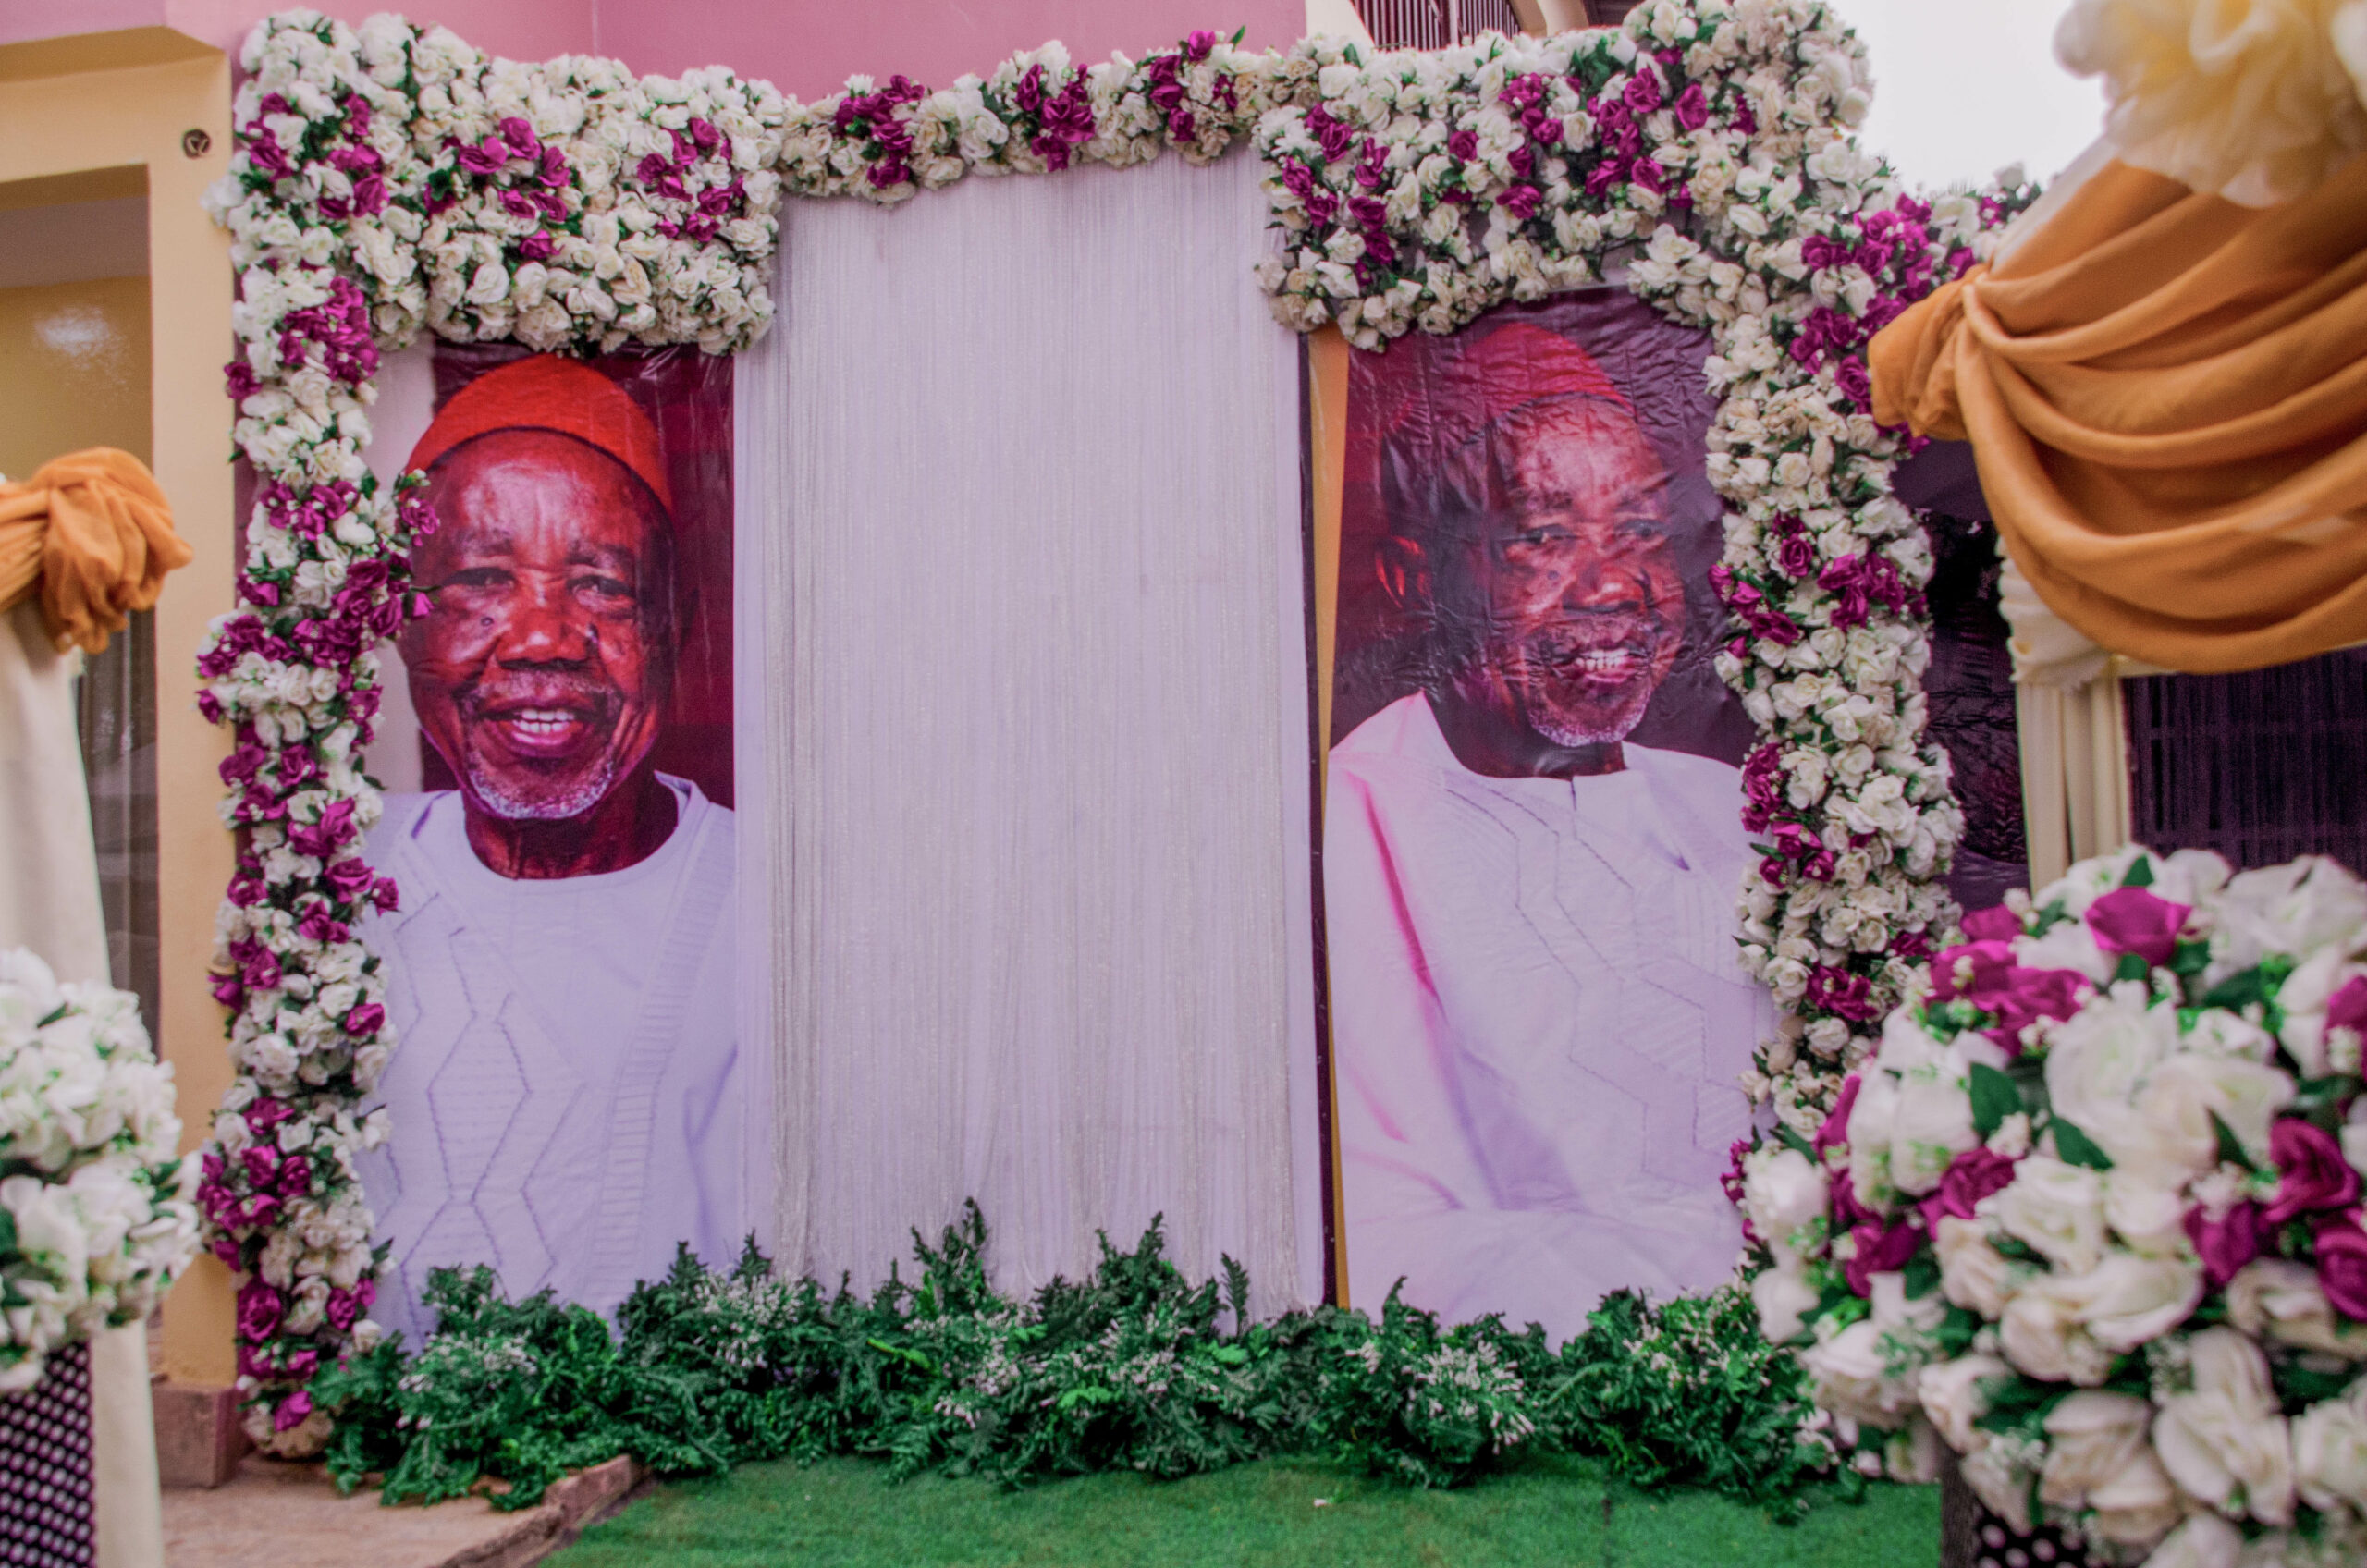 Photo 4_VFD Group GMD, Nonso Okpala, Buries Dad (Photos) Brandspurng